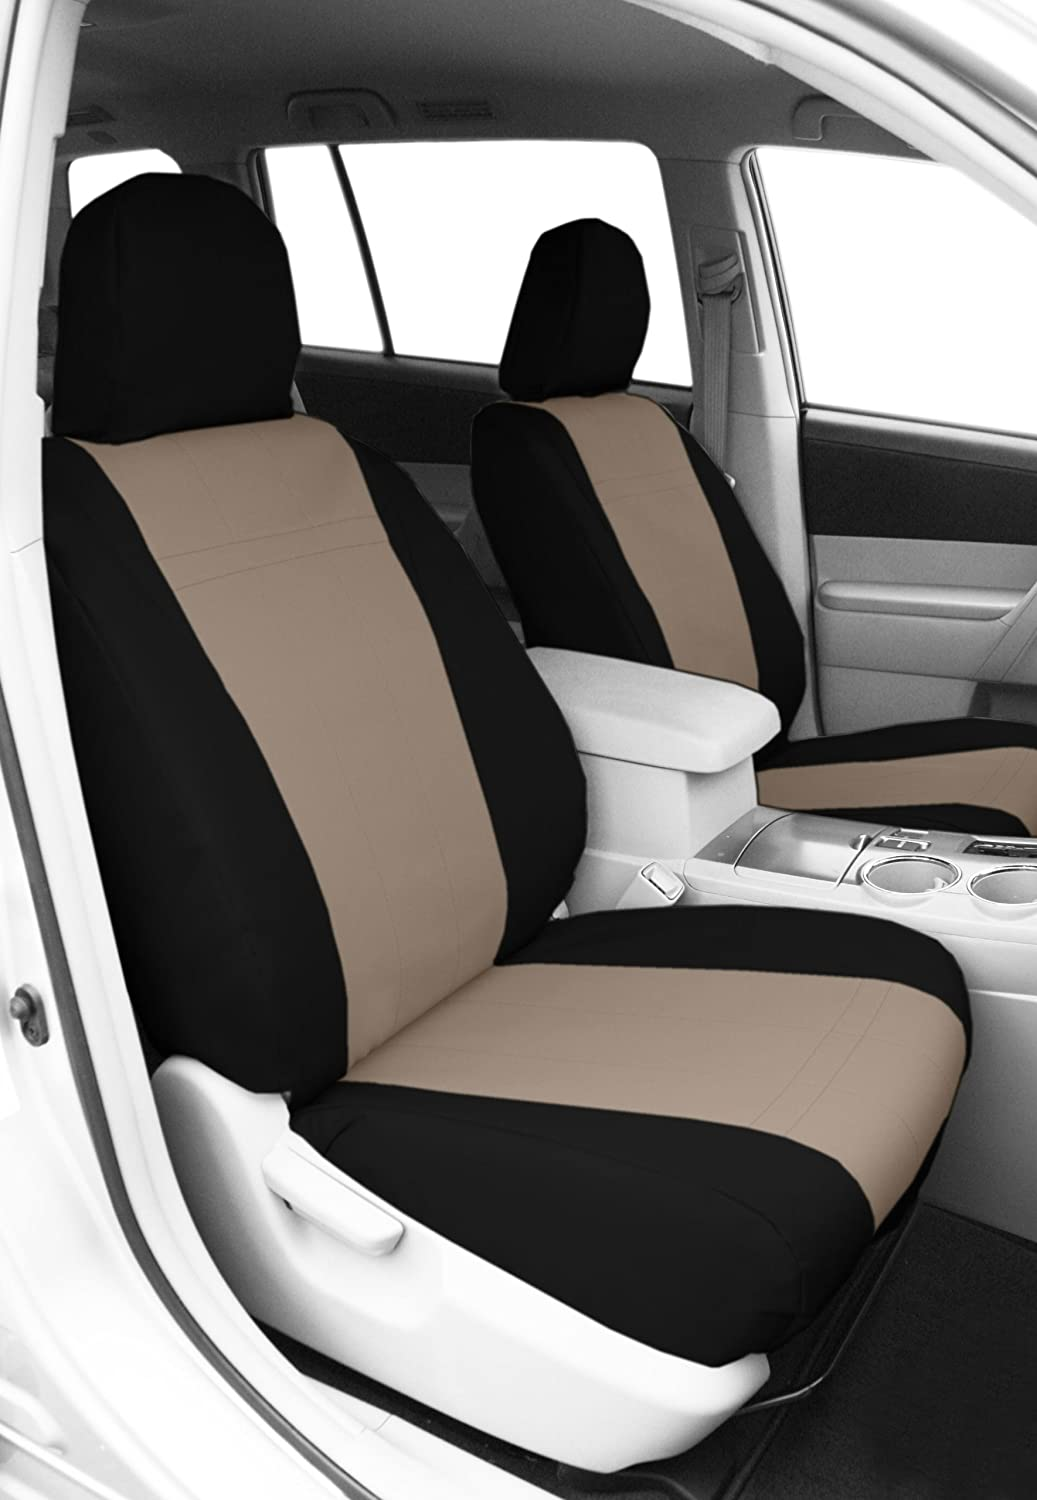 CalTrend Rear Row 60//40 Split Bench Custom Fit Seat Cover for Select Toyota Tundra Models Charcoal Insert with Black Trim DuraPlus